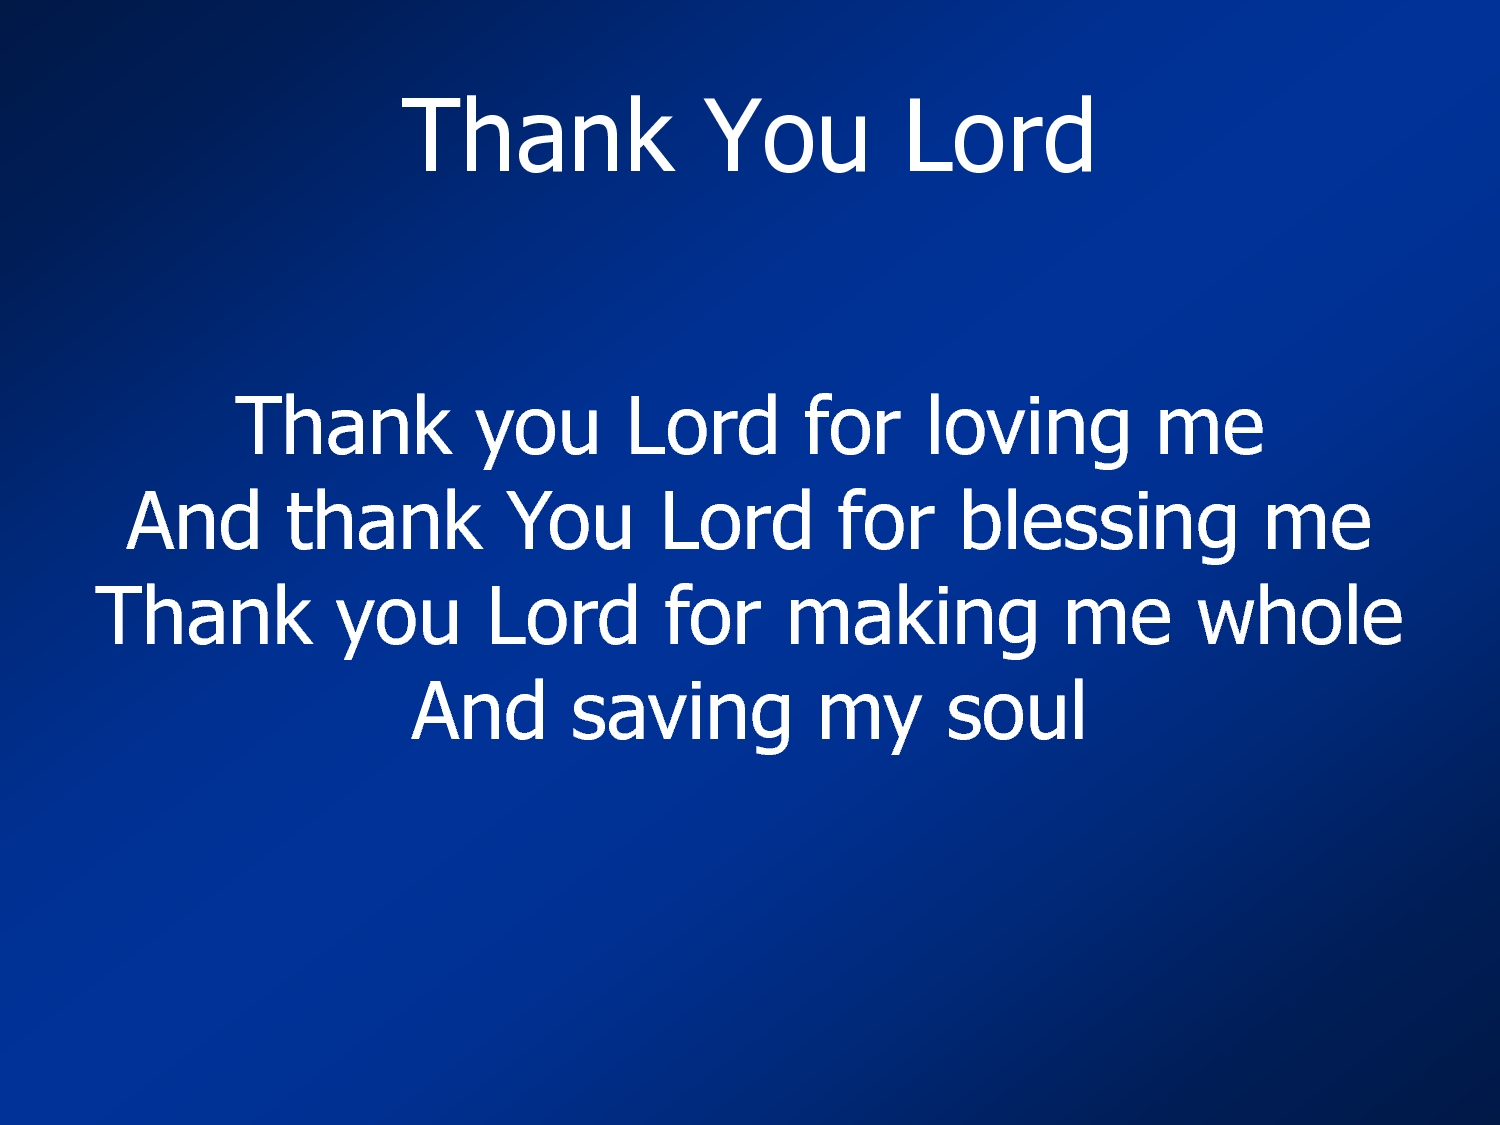 You I Lord Thank Me